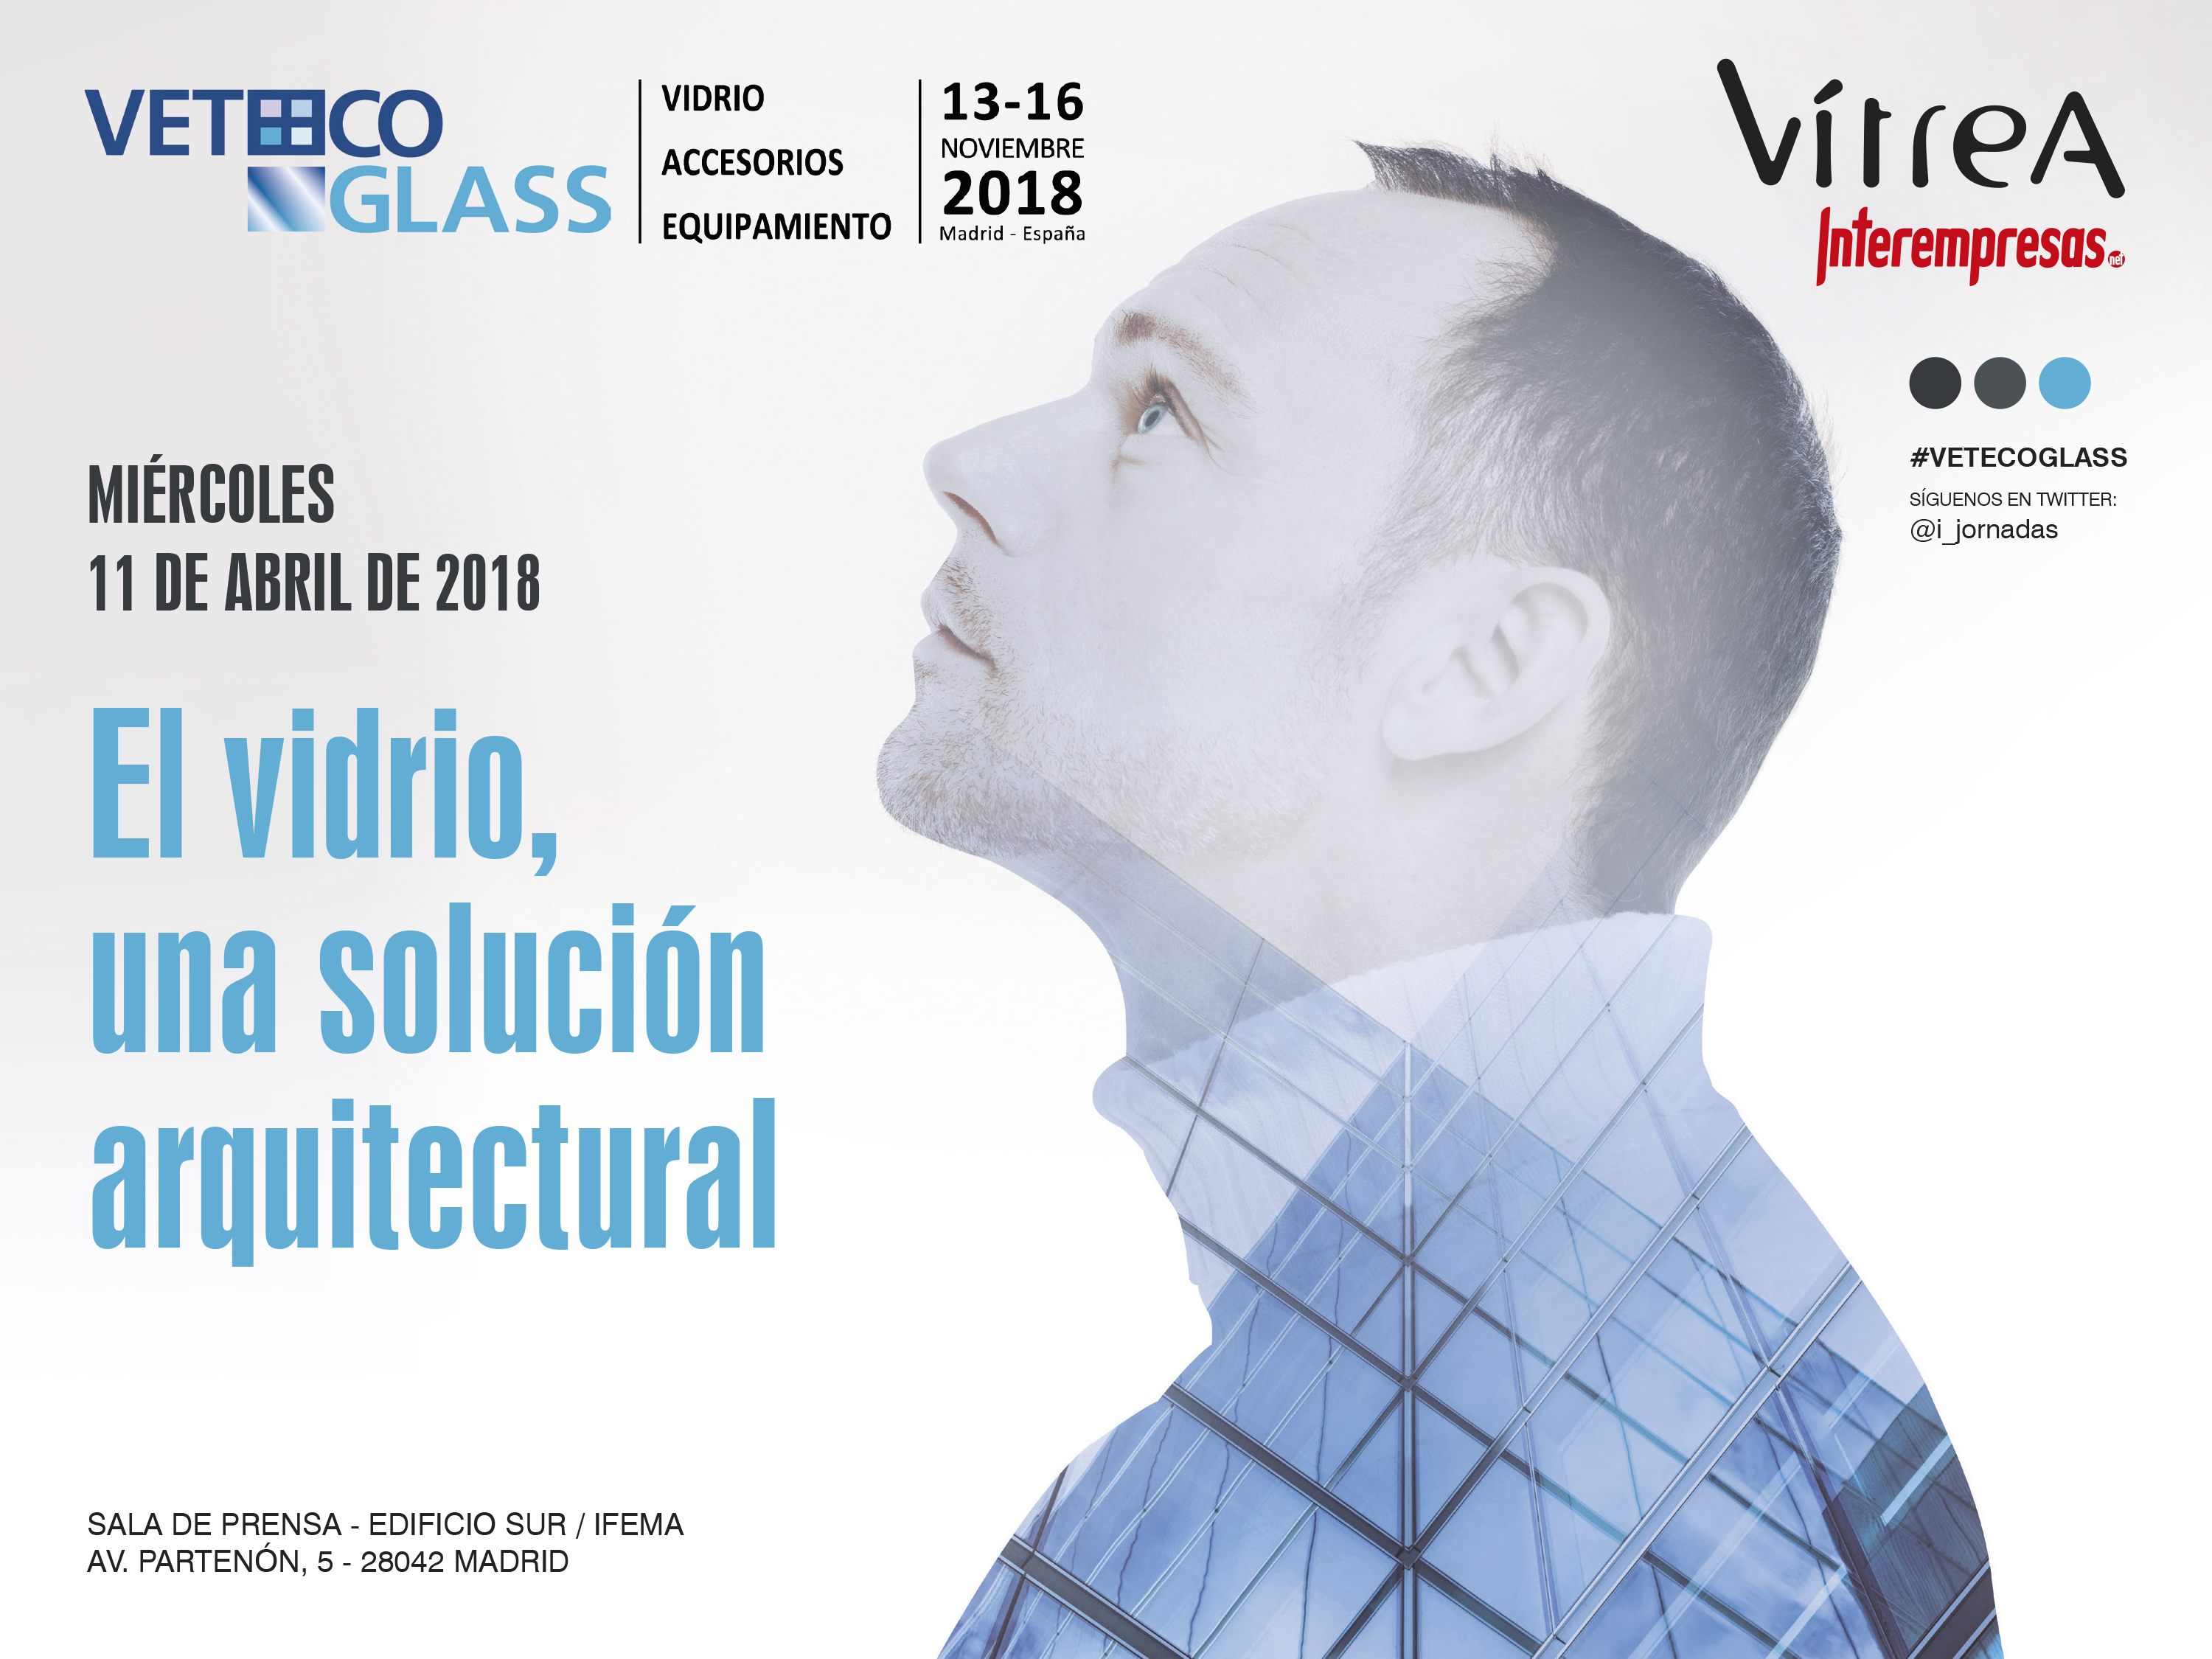 cartel de Jornada Veteco Glass Madrid